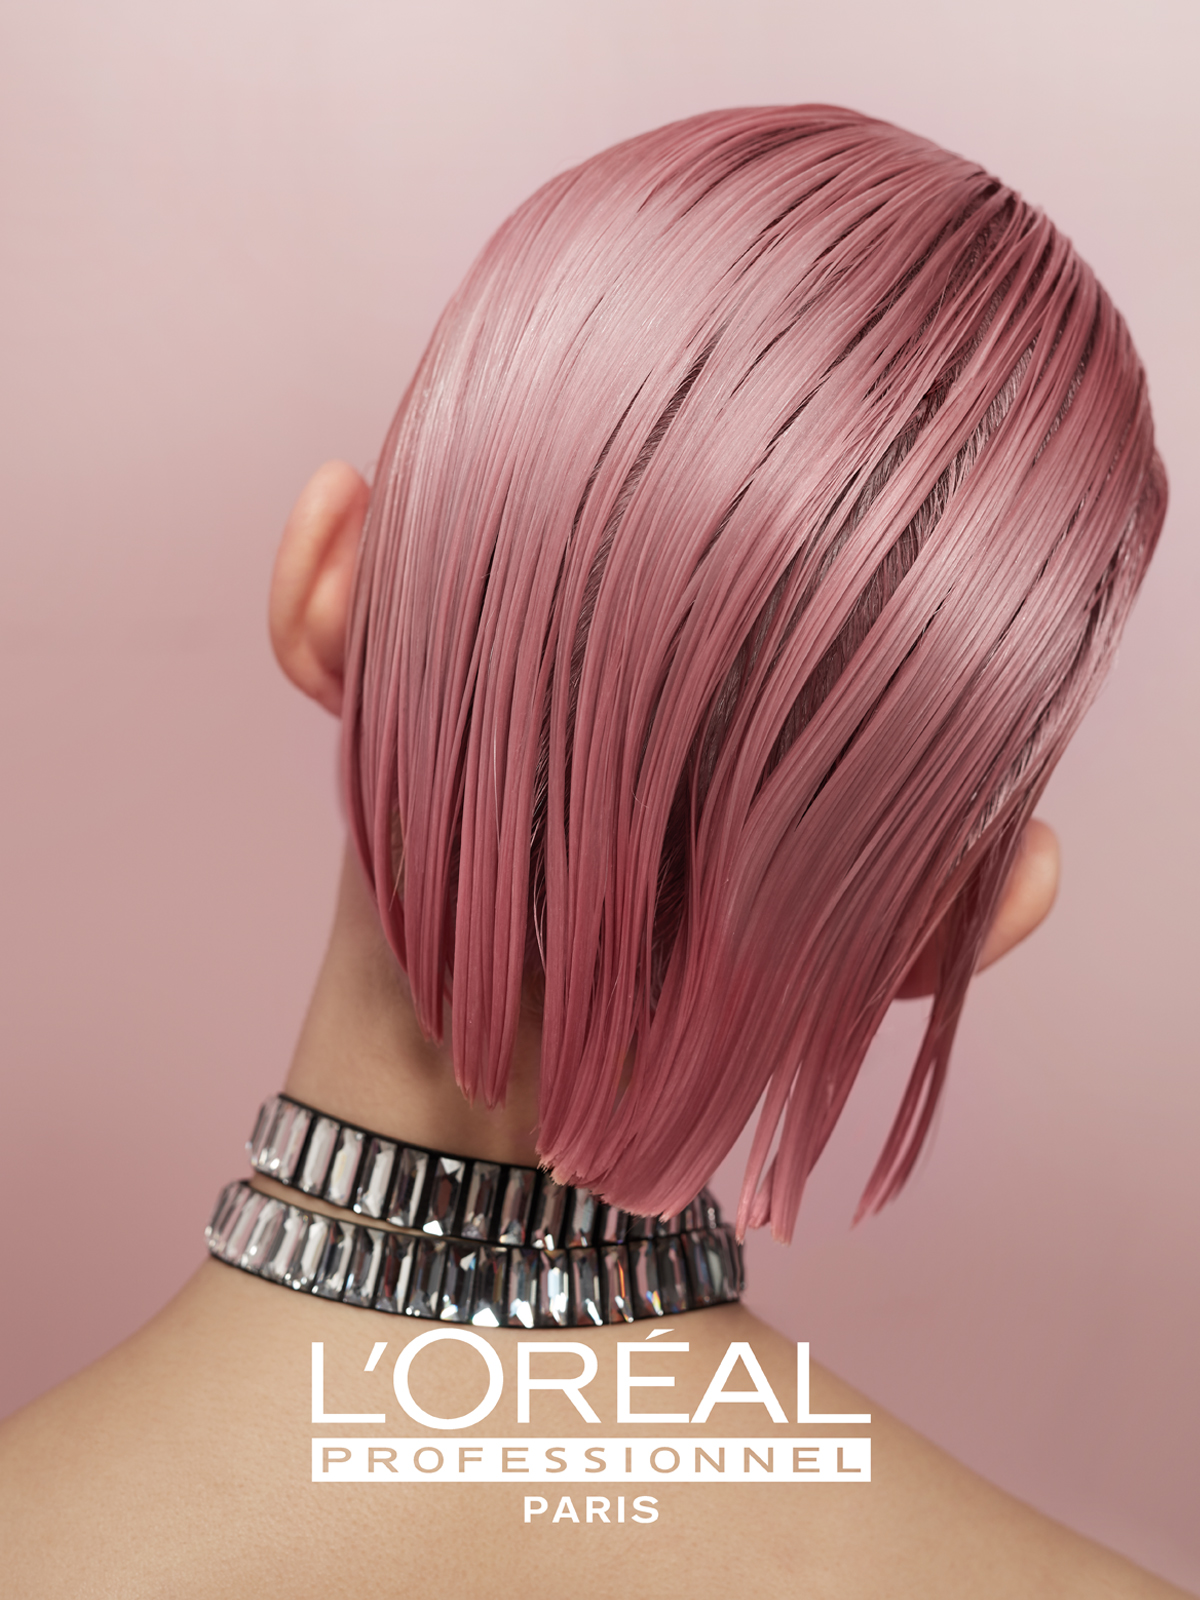 Loreal lookbook 2018 j8.jpg